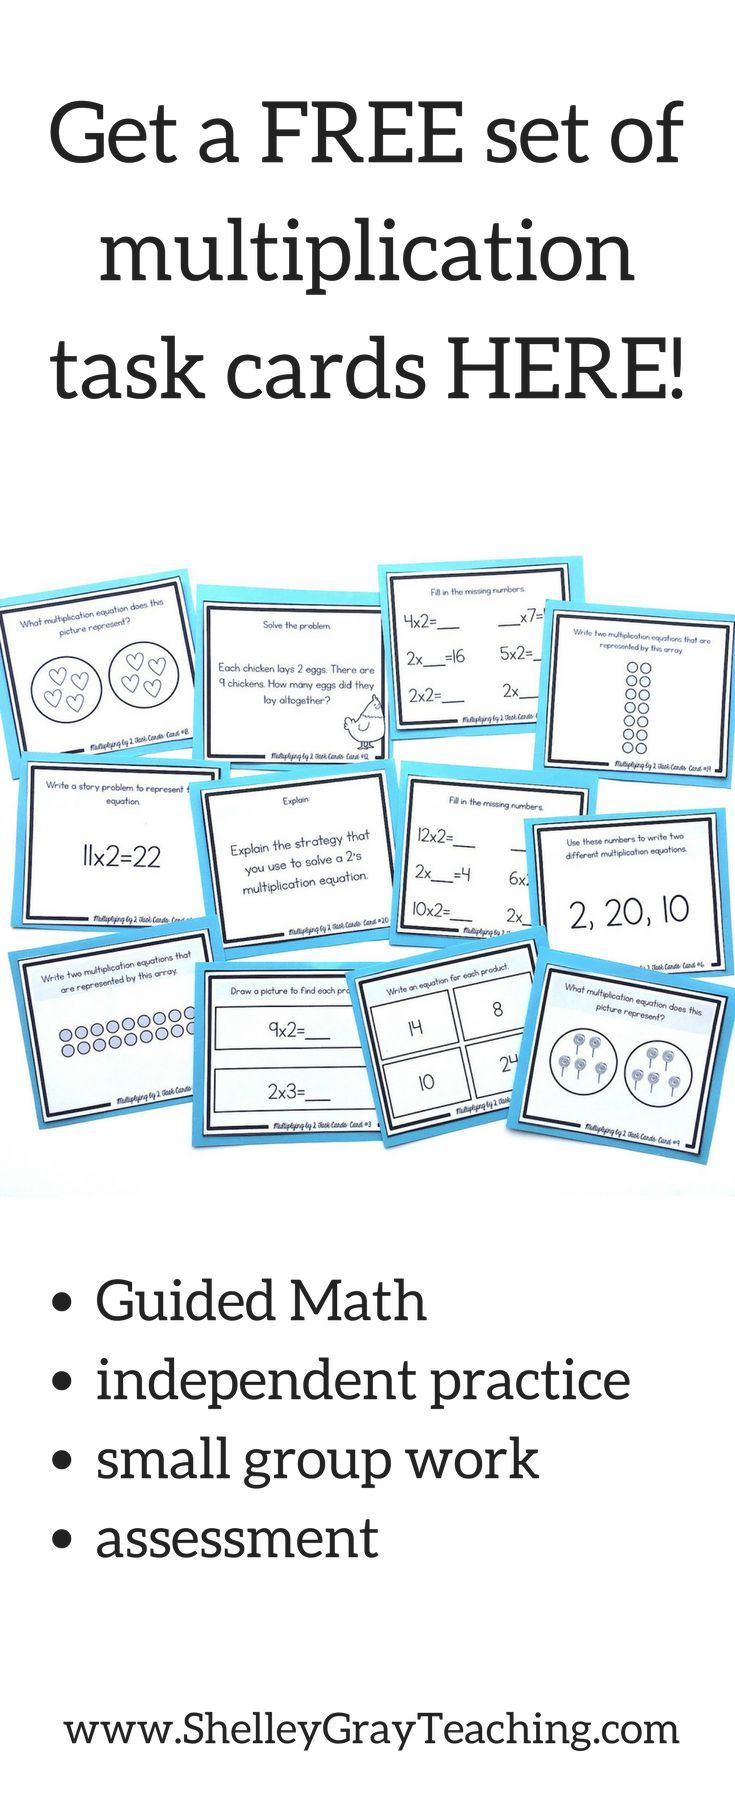 369 best Multiplication & Division images on Pinterest | School, 3rd ...